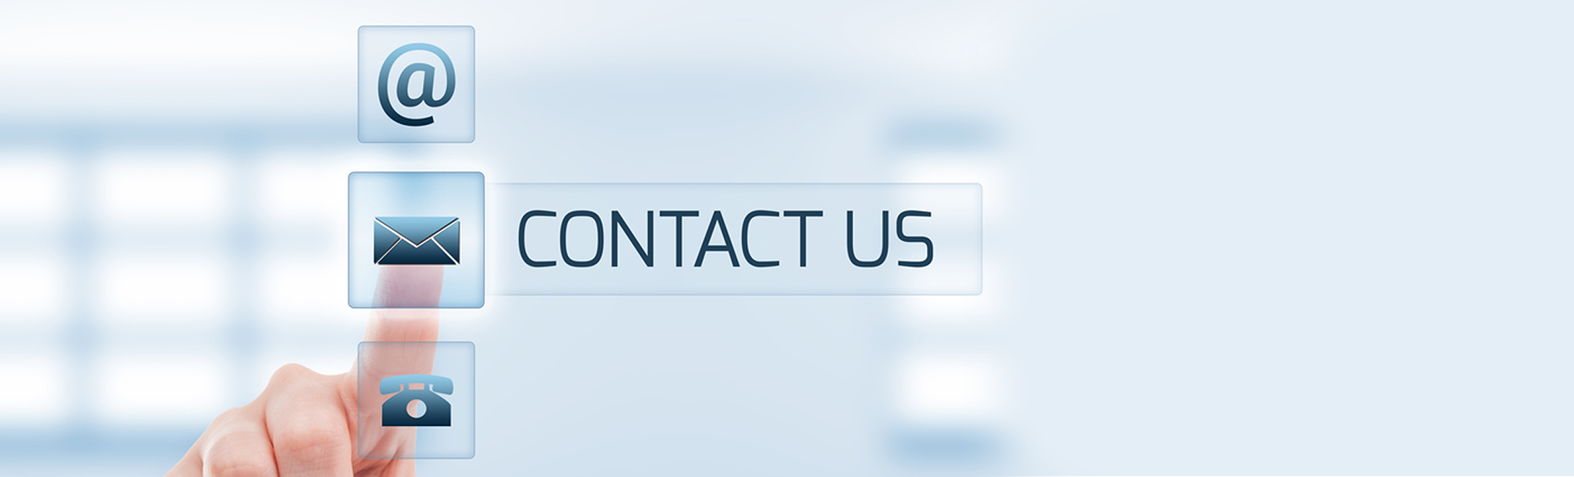 Contact-us-image2-1